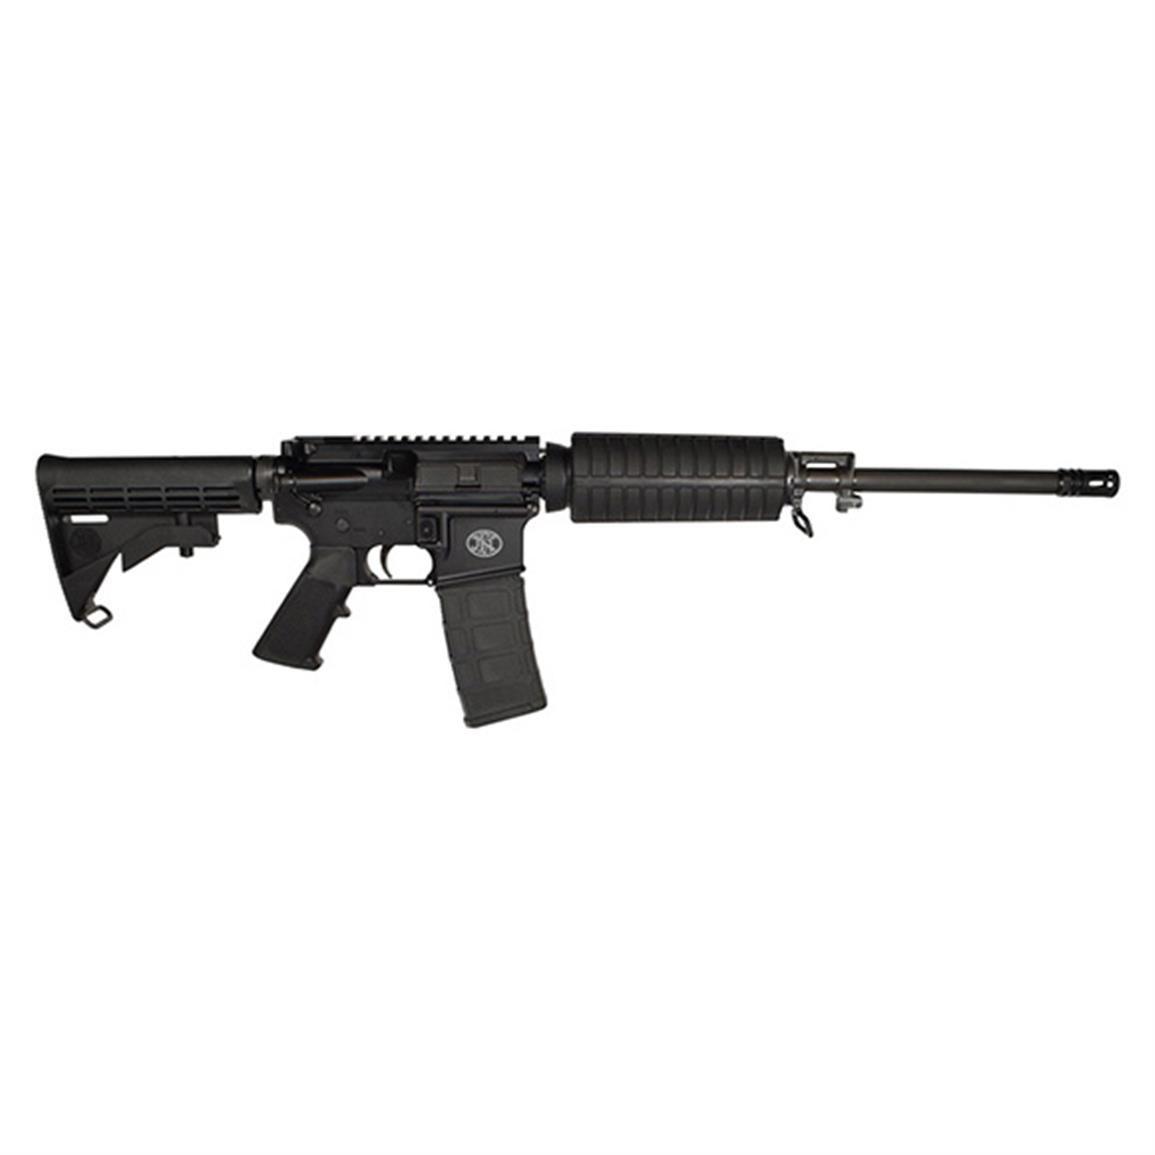 "FNH FN15 1776, Semi-Automatic, 5.56x45mm, 16"" Barrel, 30 Rounds"